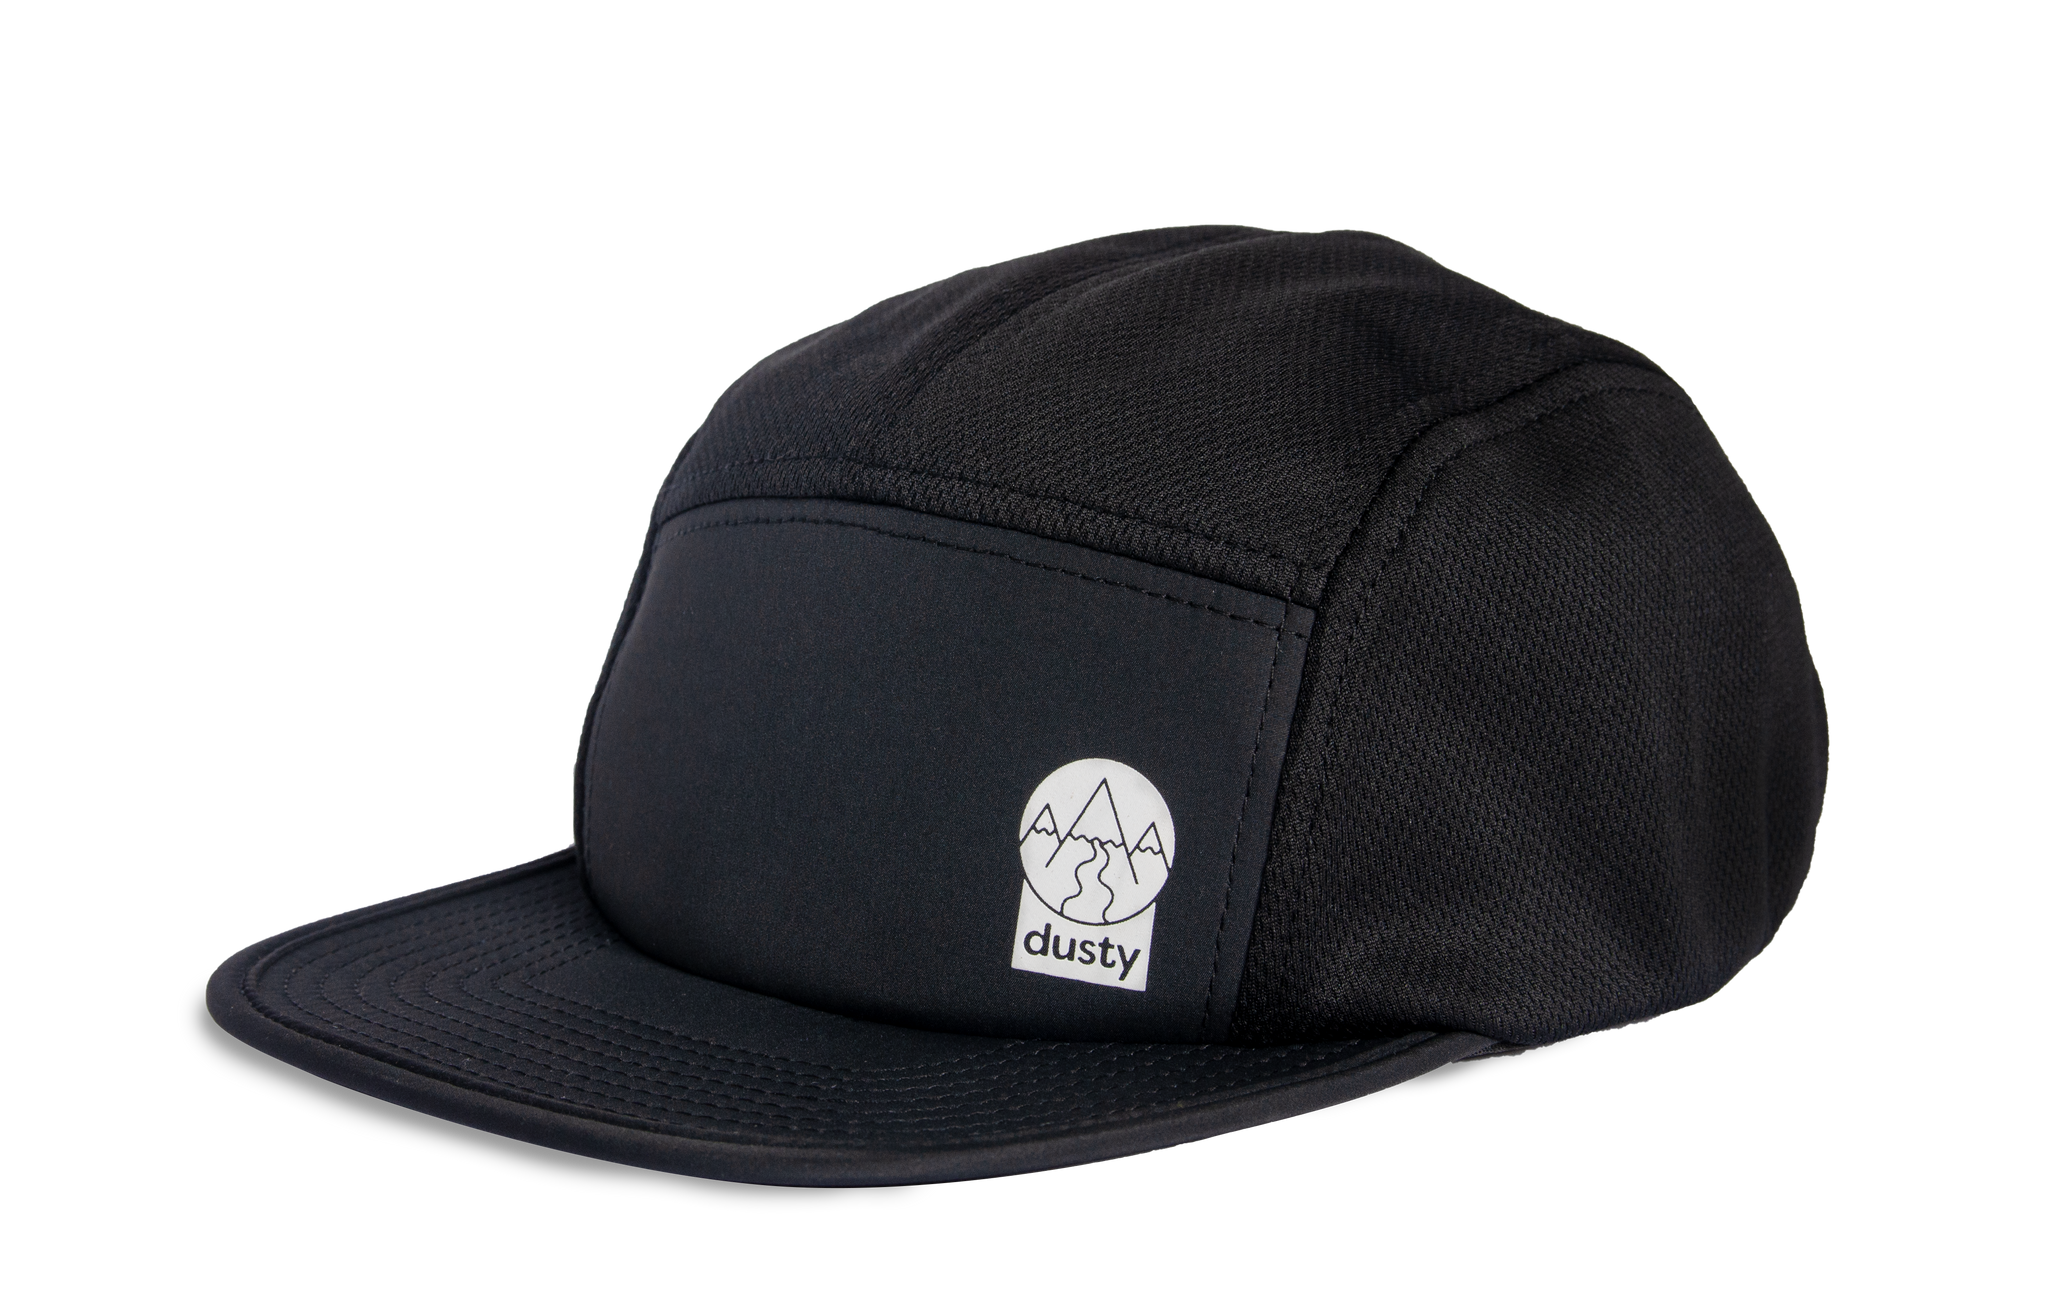 Five Panel Midnight